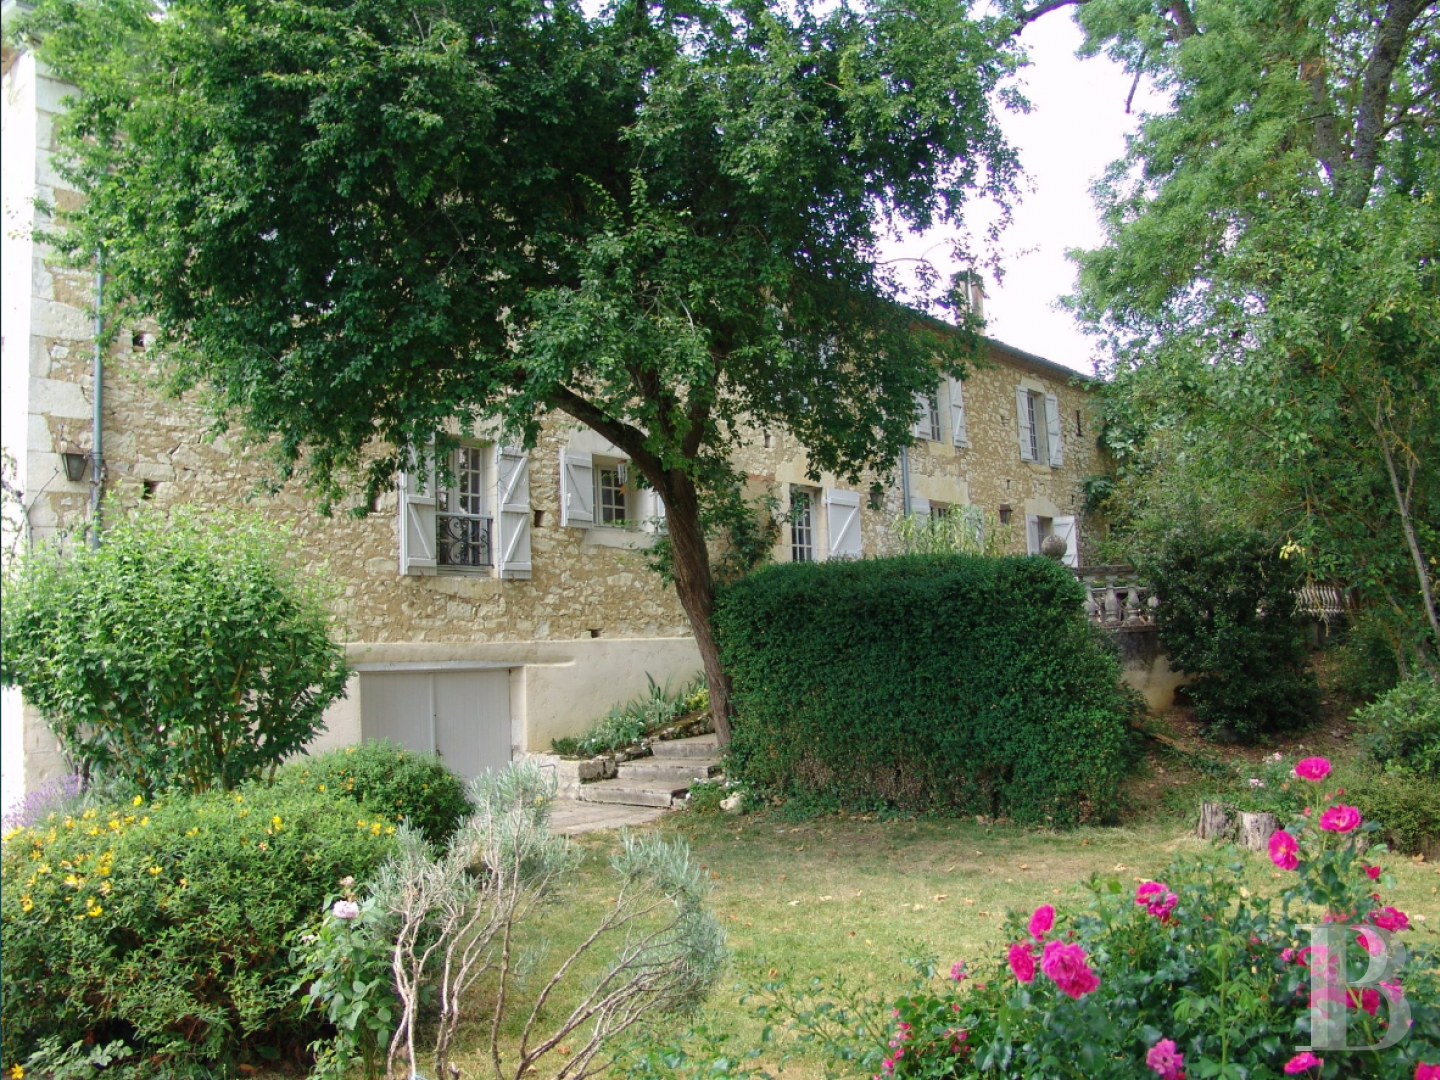 property for sale France midi pyrenees residences farms - 2 zoom